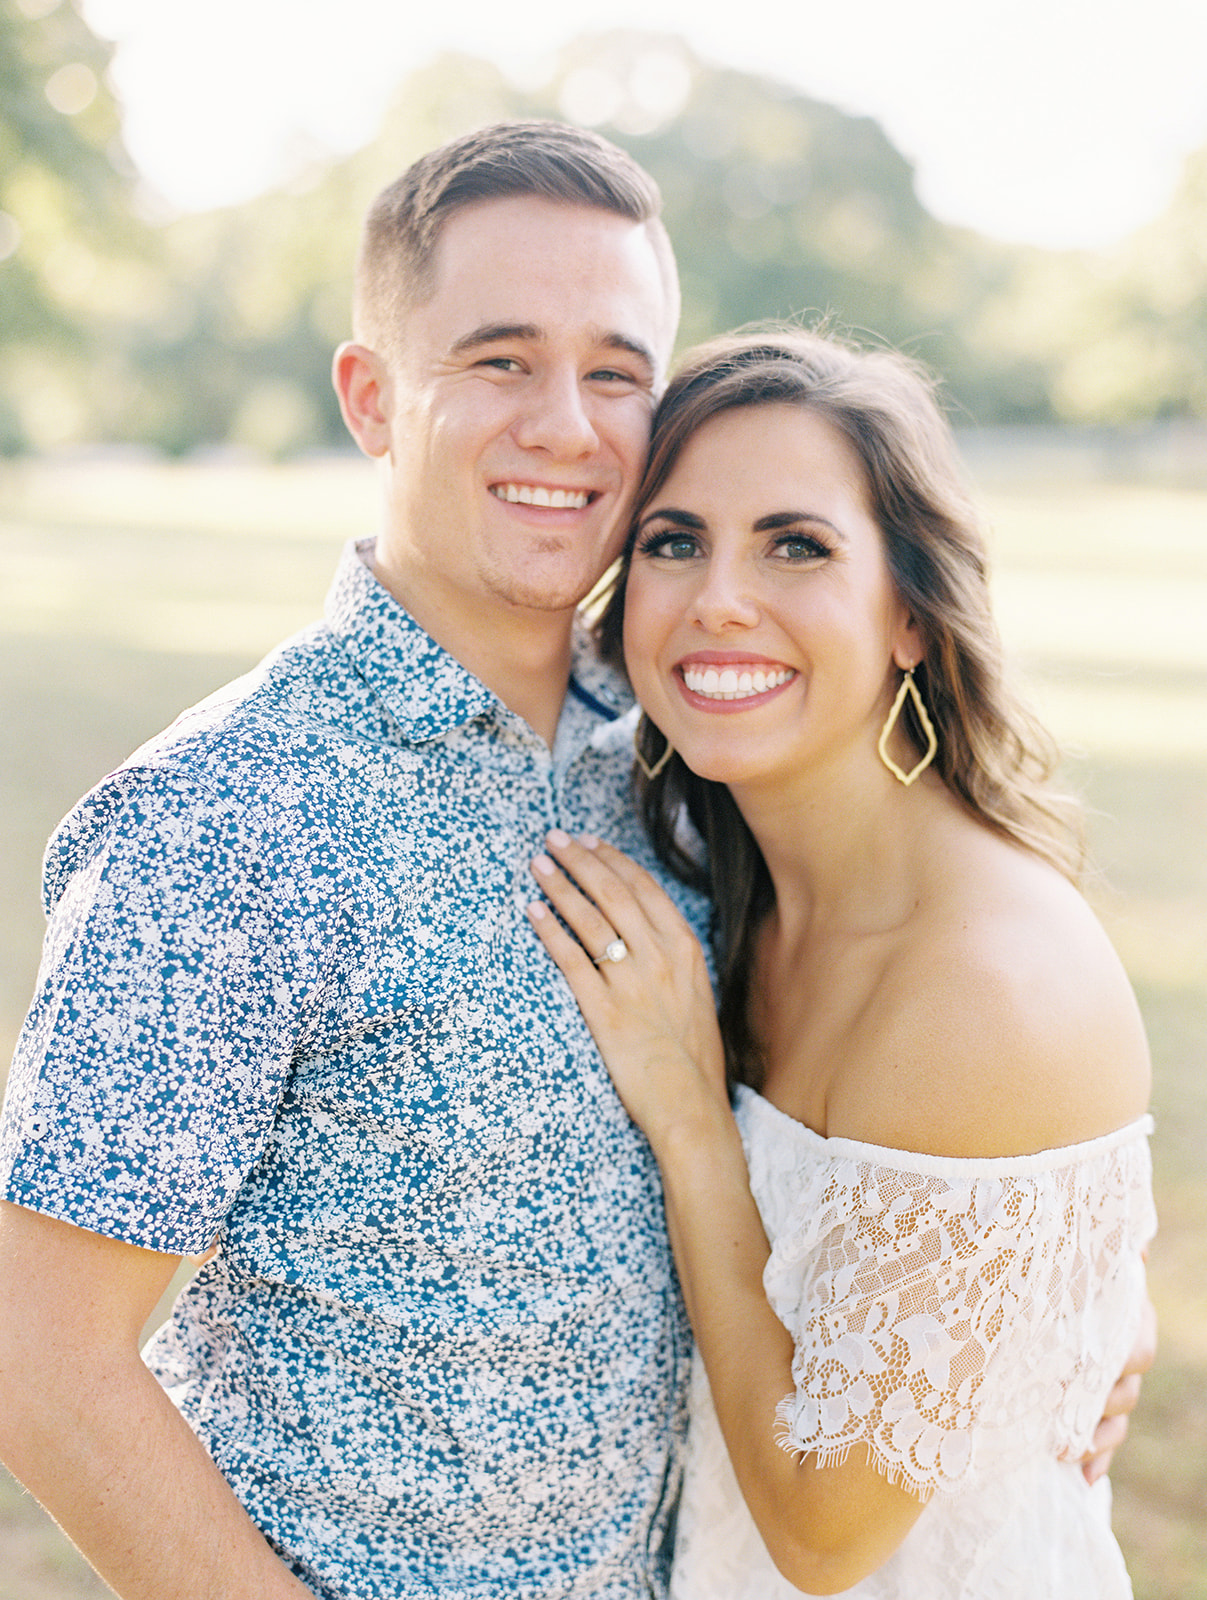 tips for taking your best engagement photos | The Baking Fairy